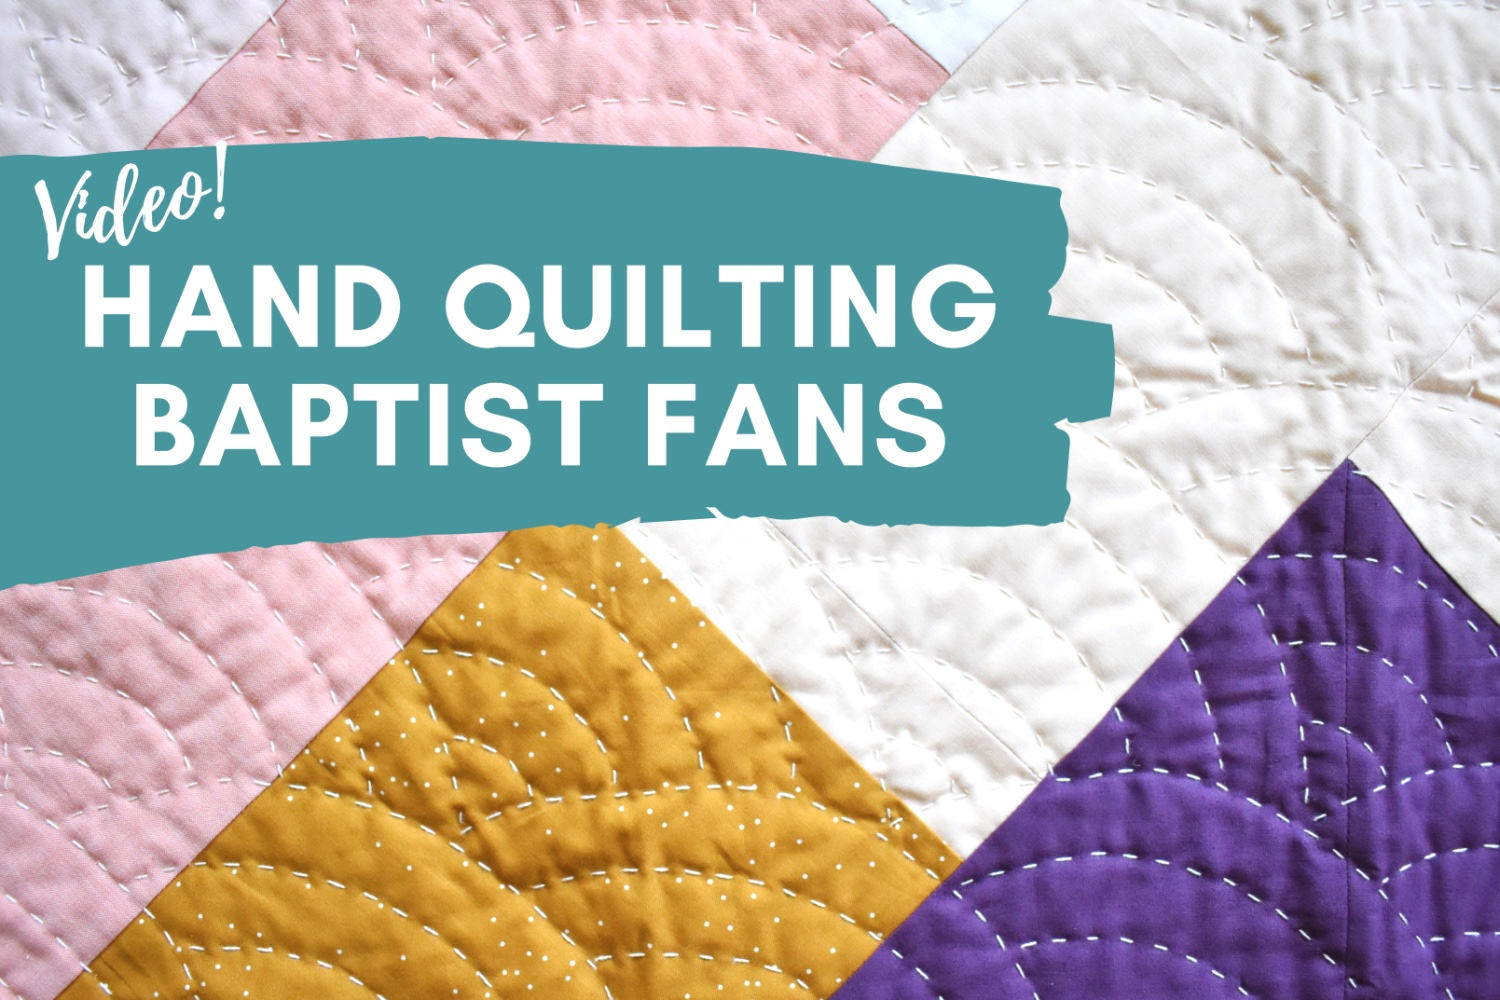 Baptist Fans Hand Quilting Video!